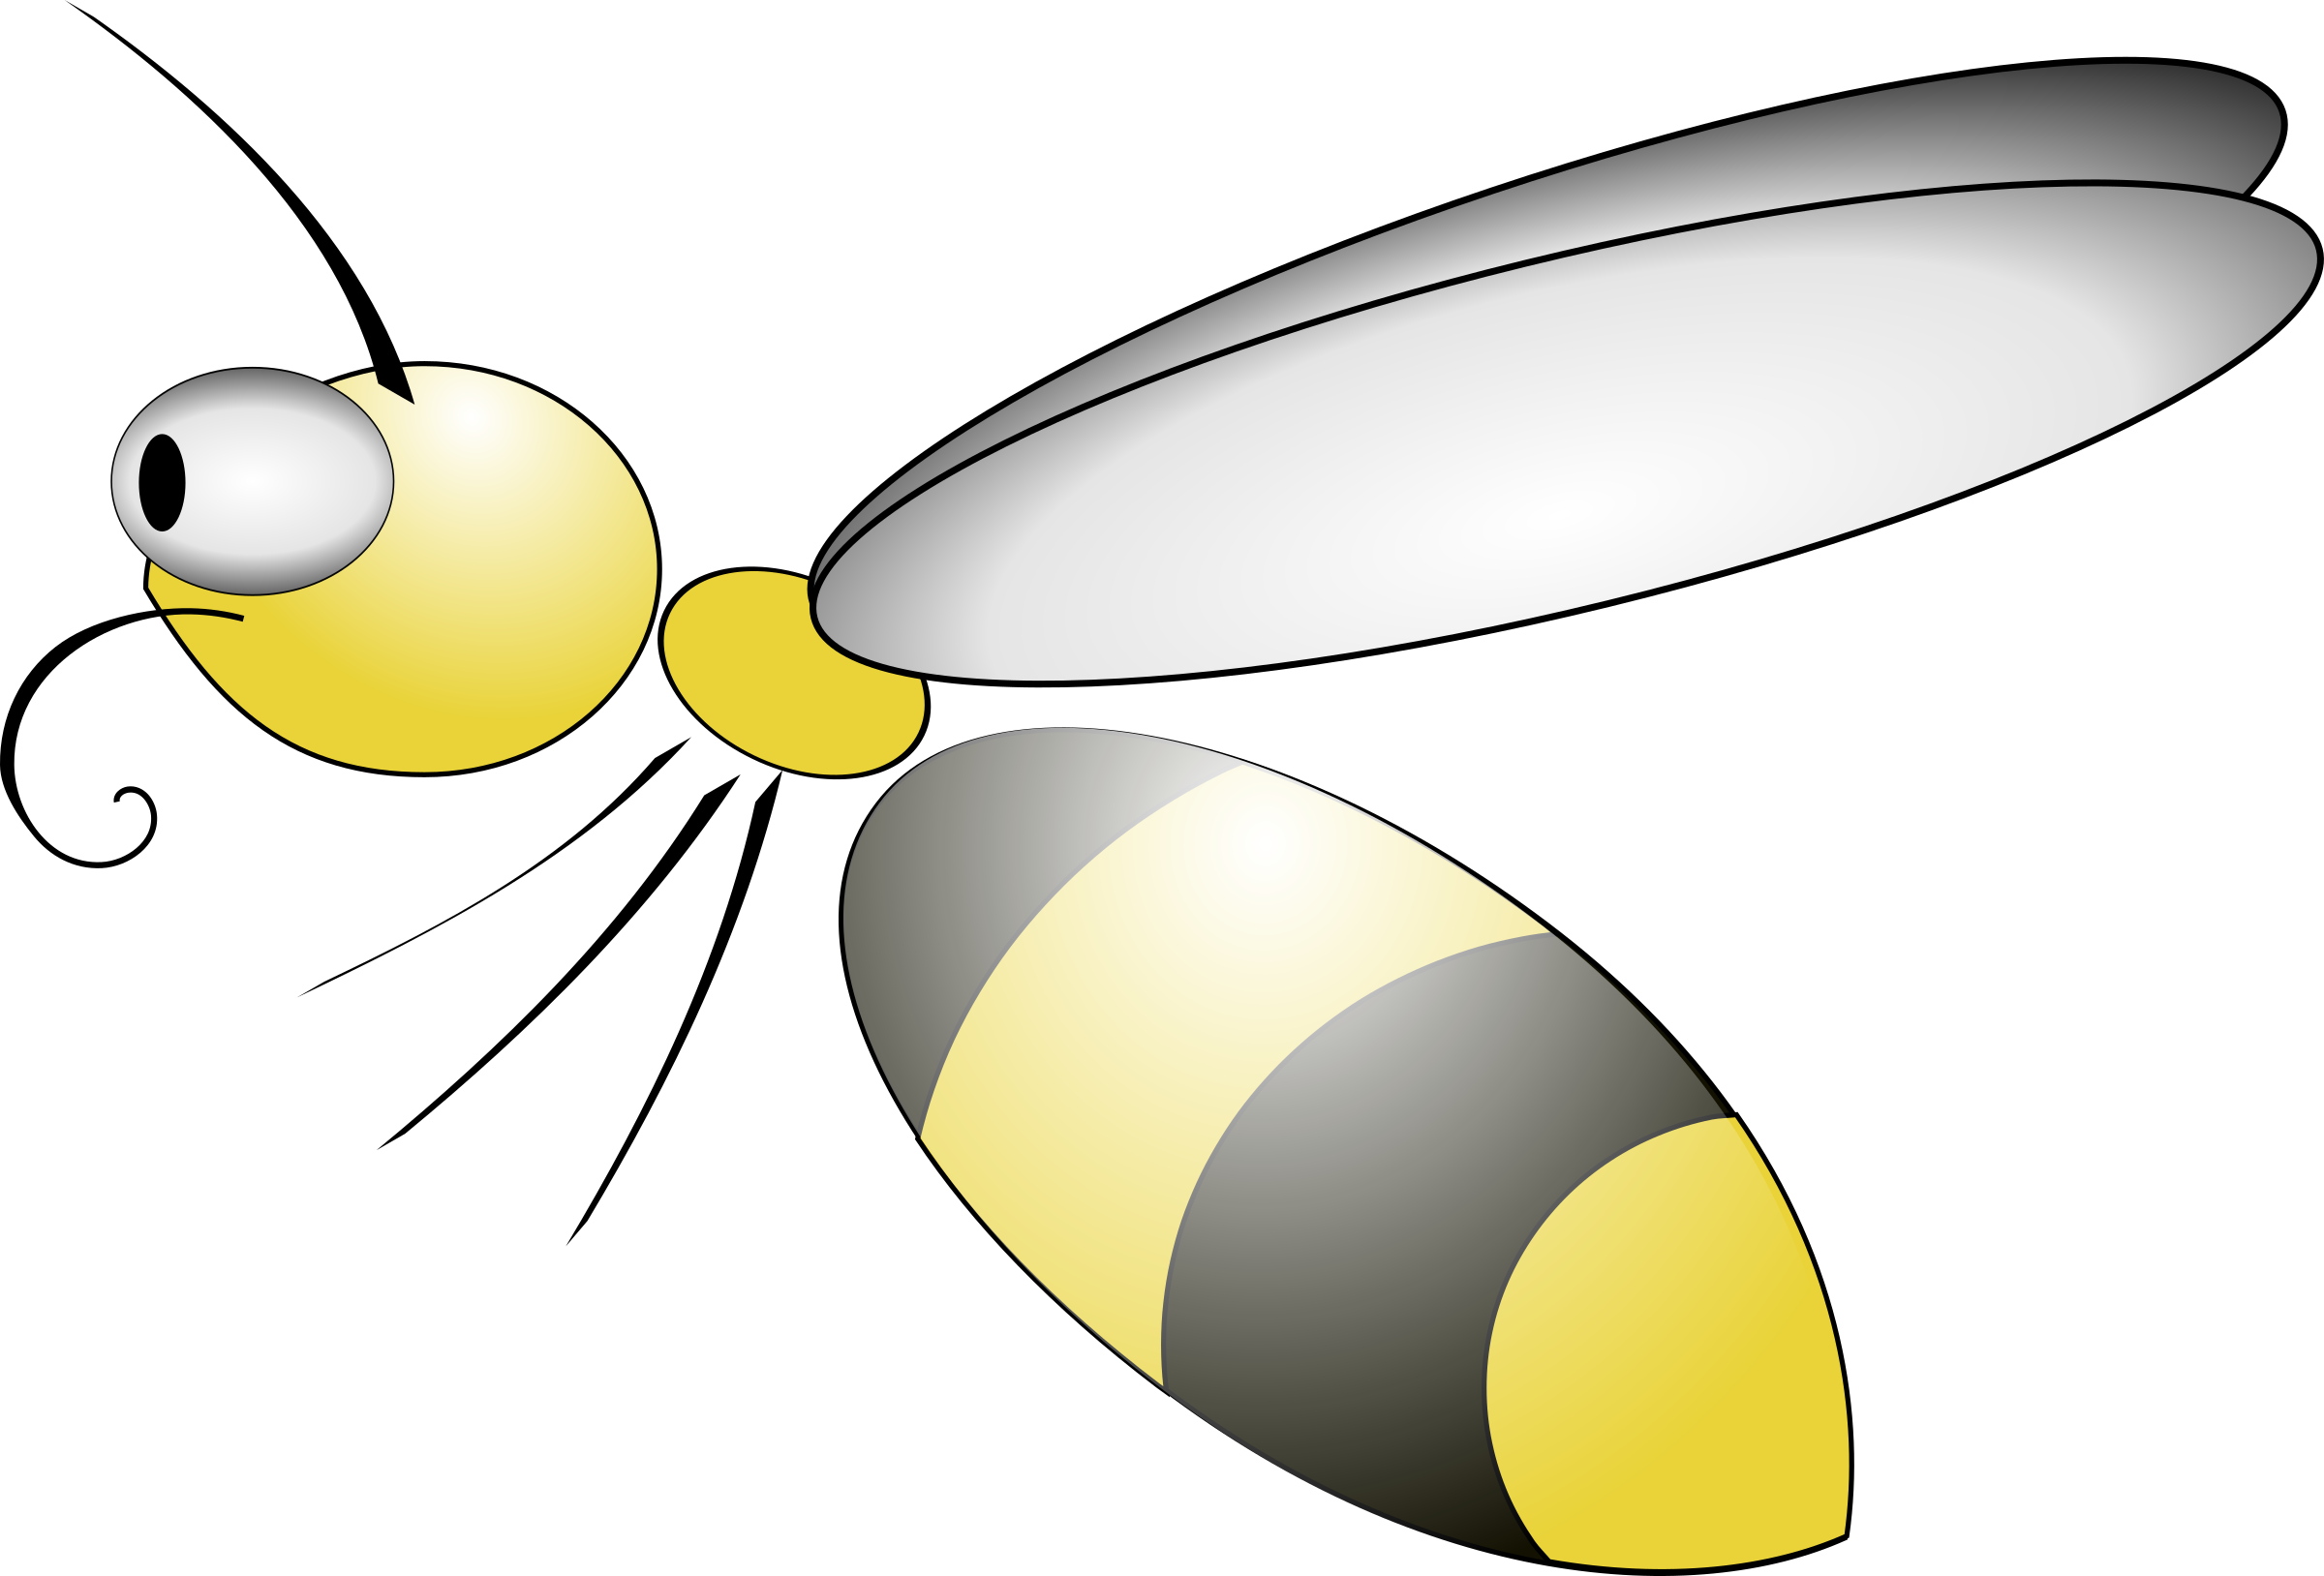 Net clipart insect net. Abeille big image png